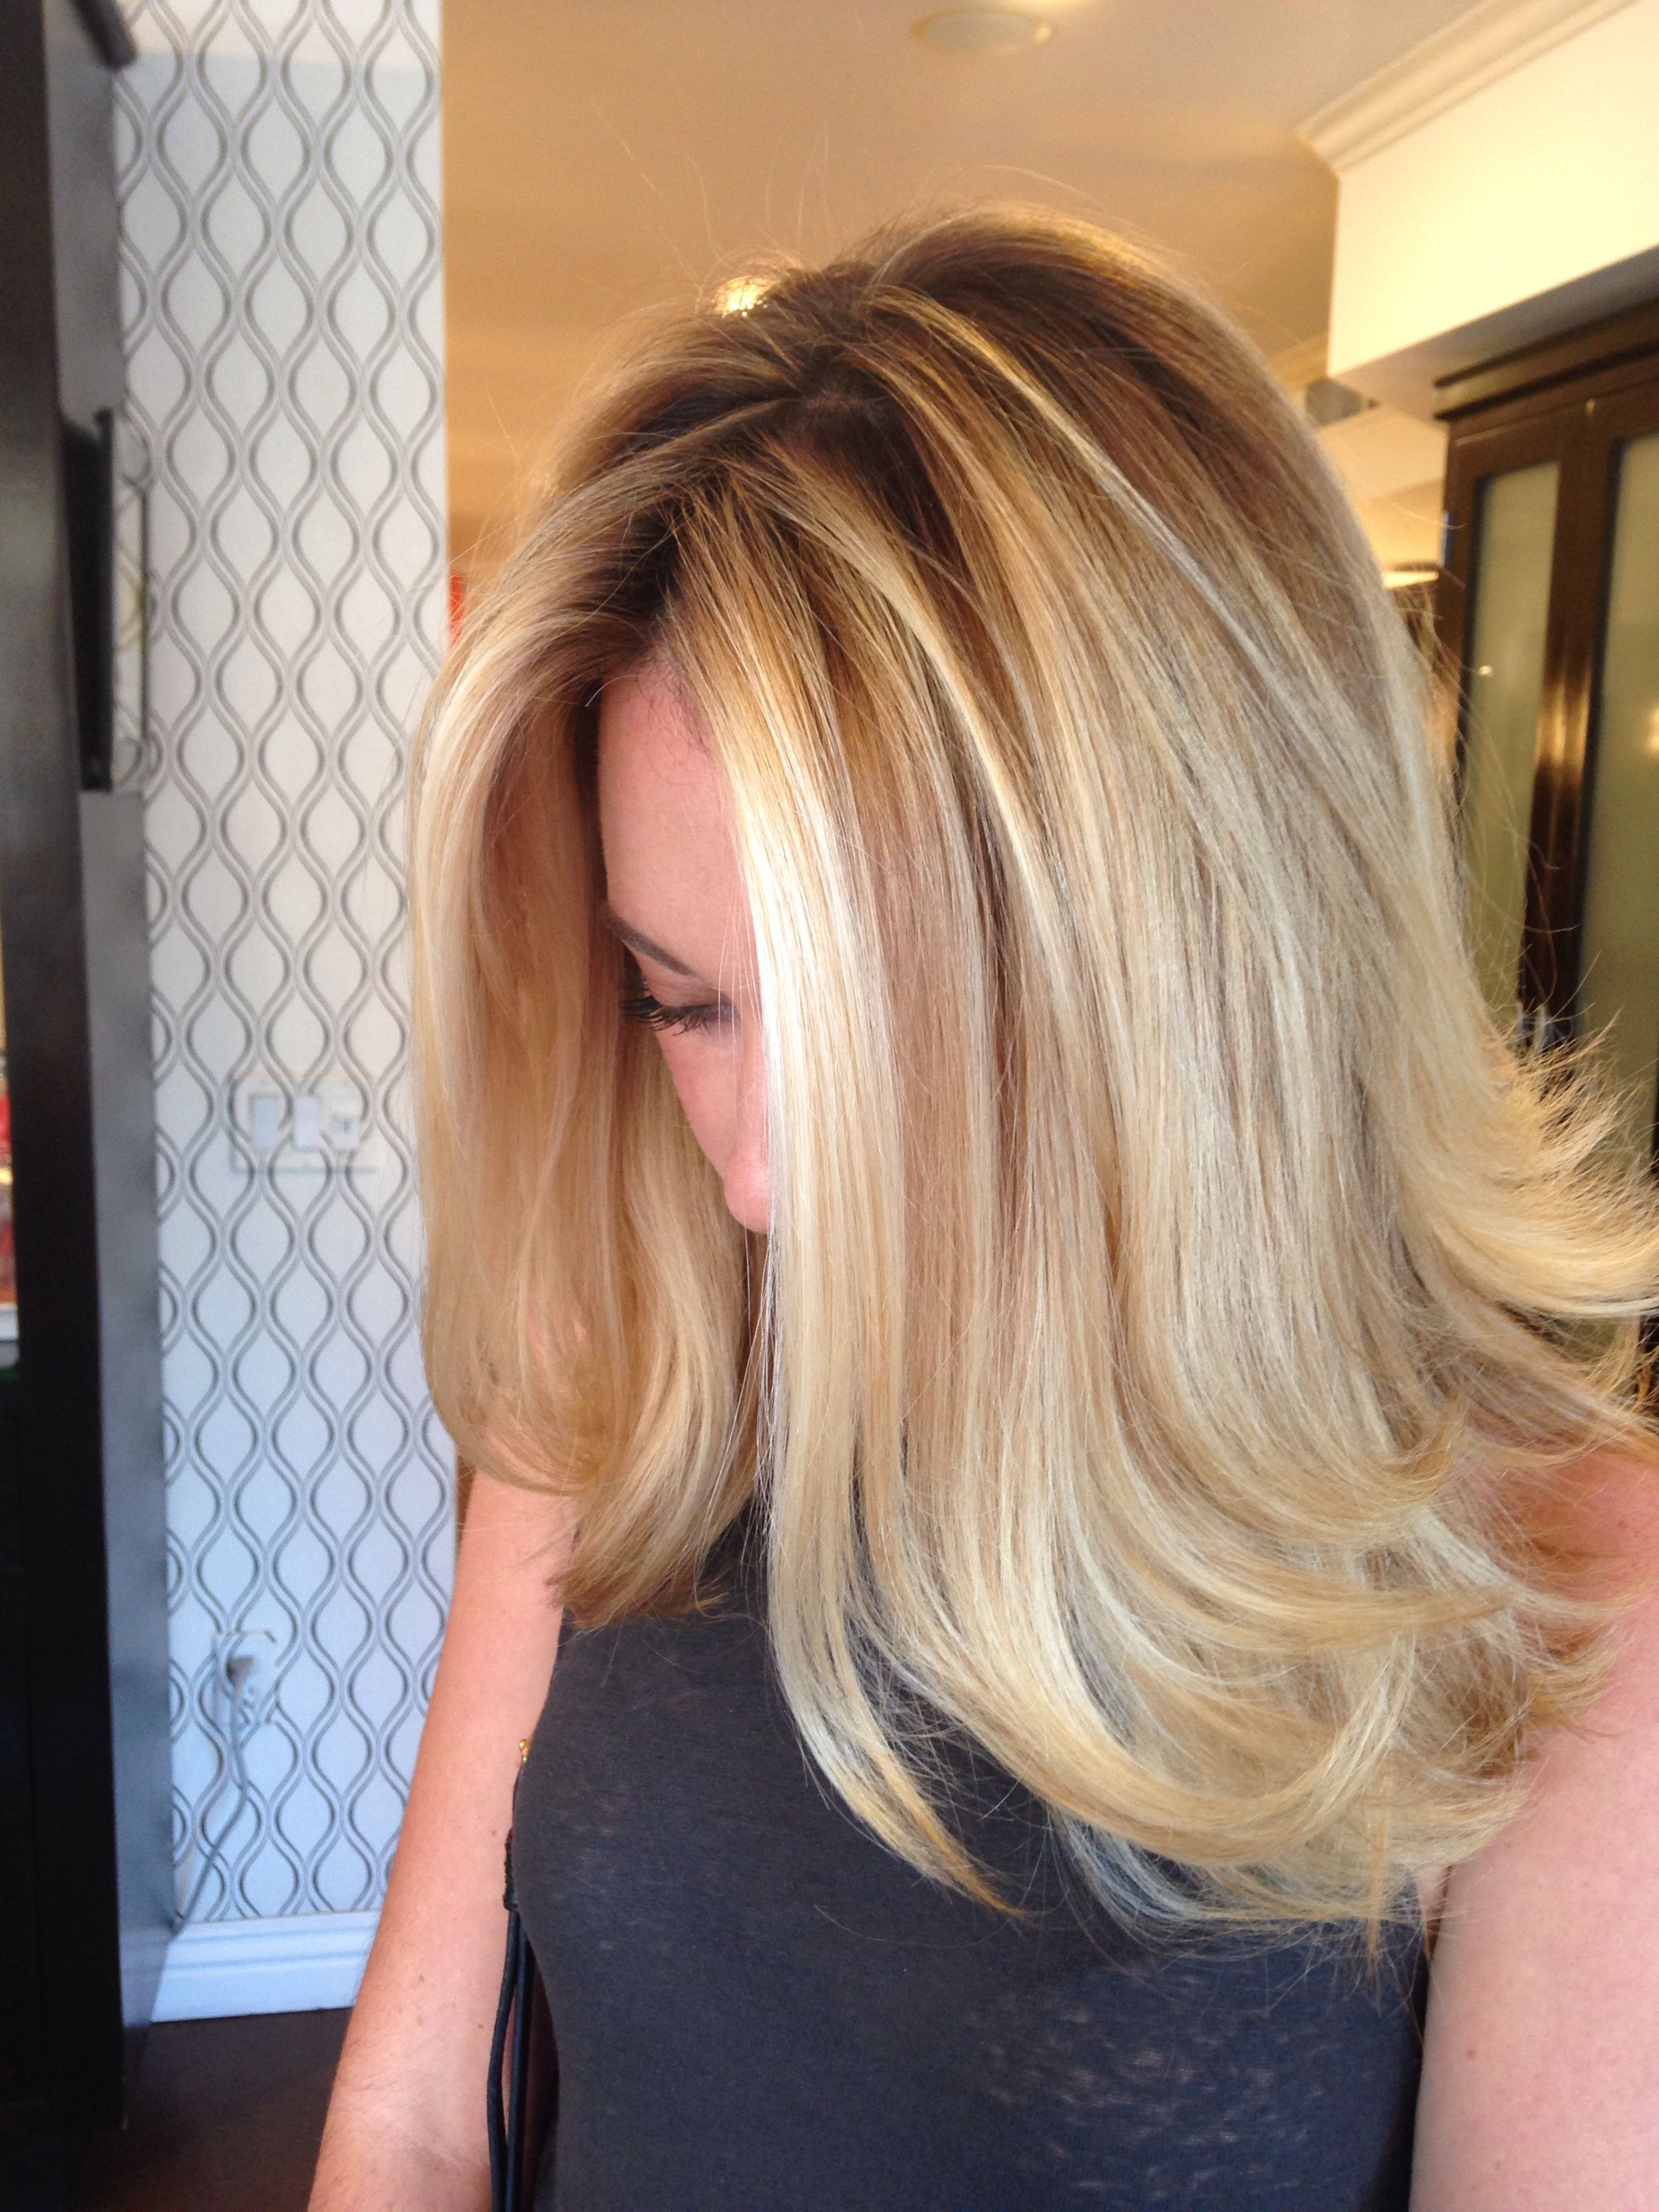 Blonde Balayage By Bella Salon Of Naples In Long Beach Ca Baliage Hairstyle Hair Gorgeous Hair Tchip Coiffure Coiffure Cheveux